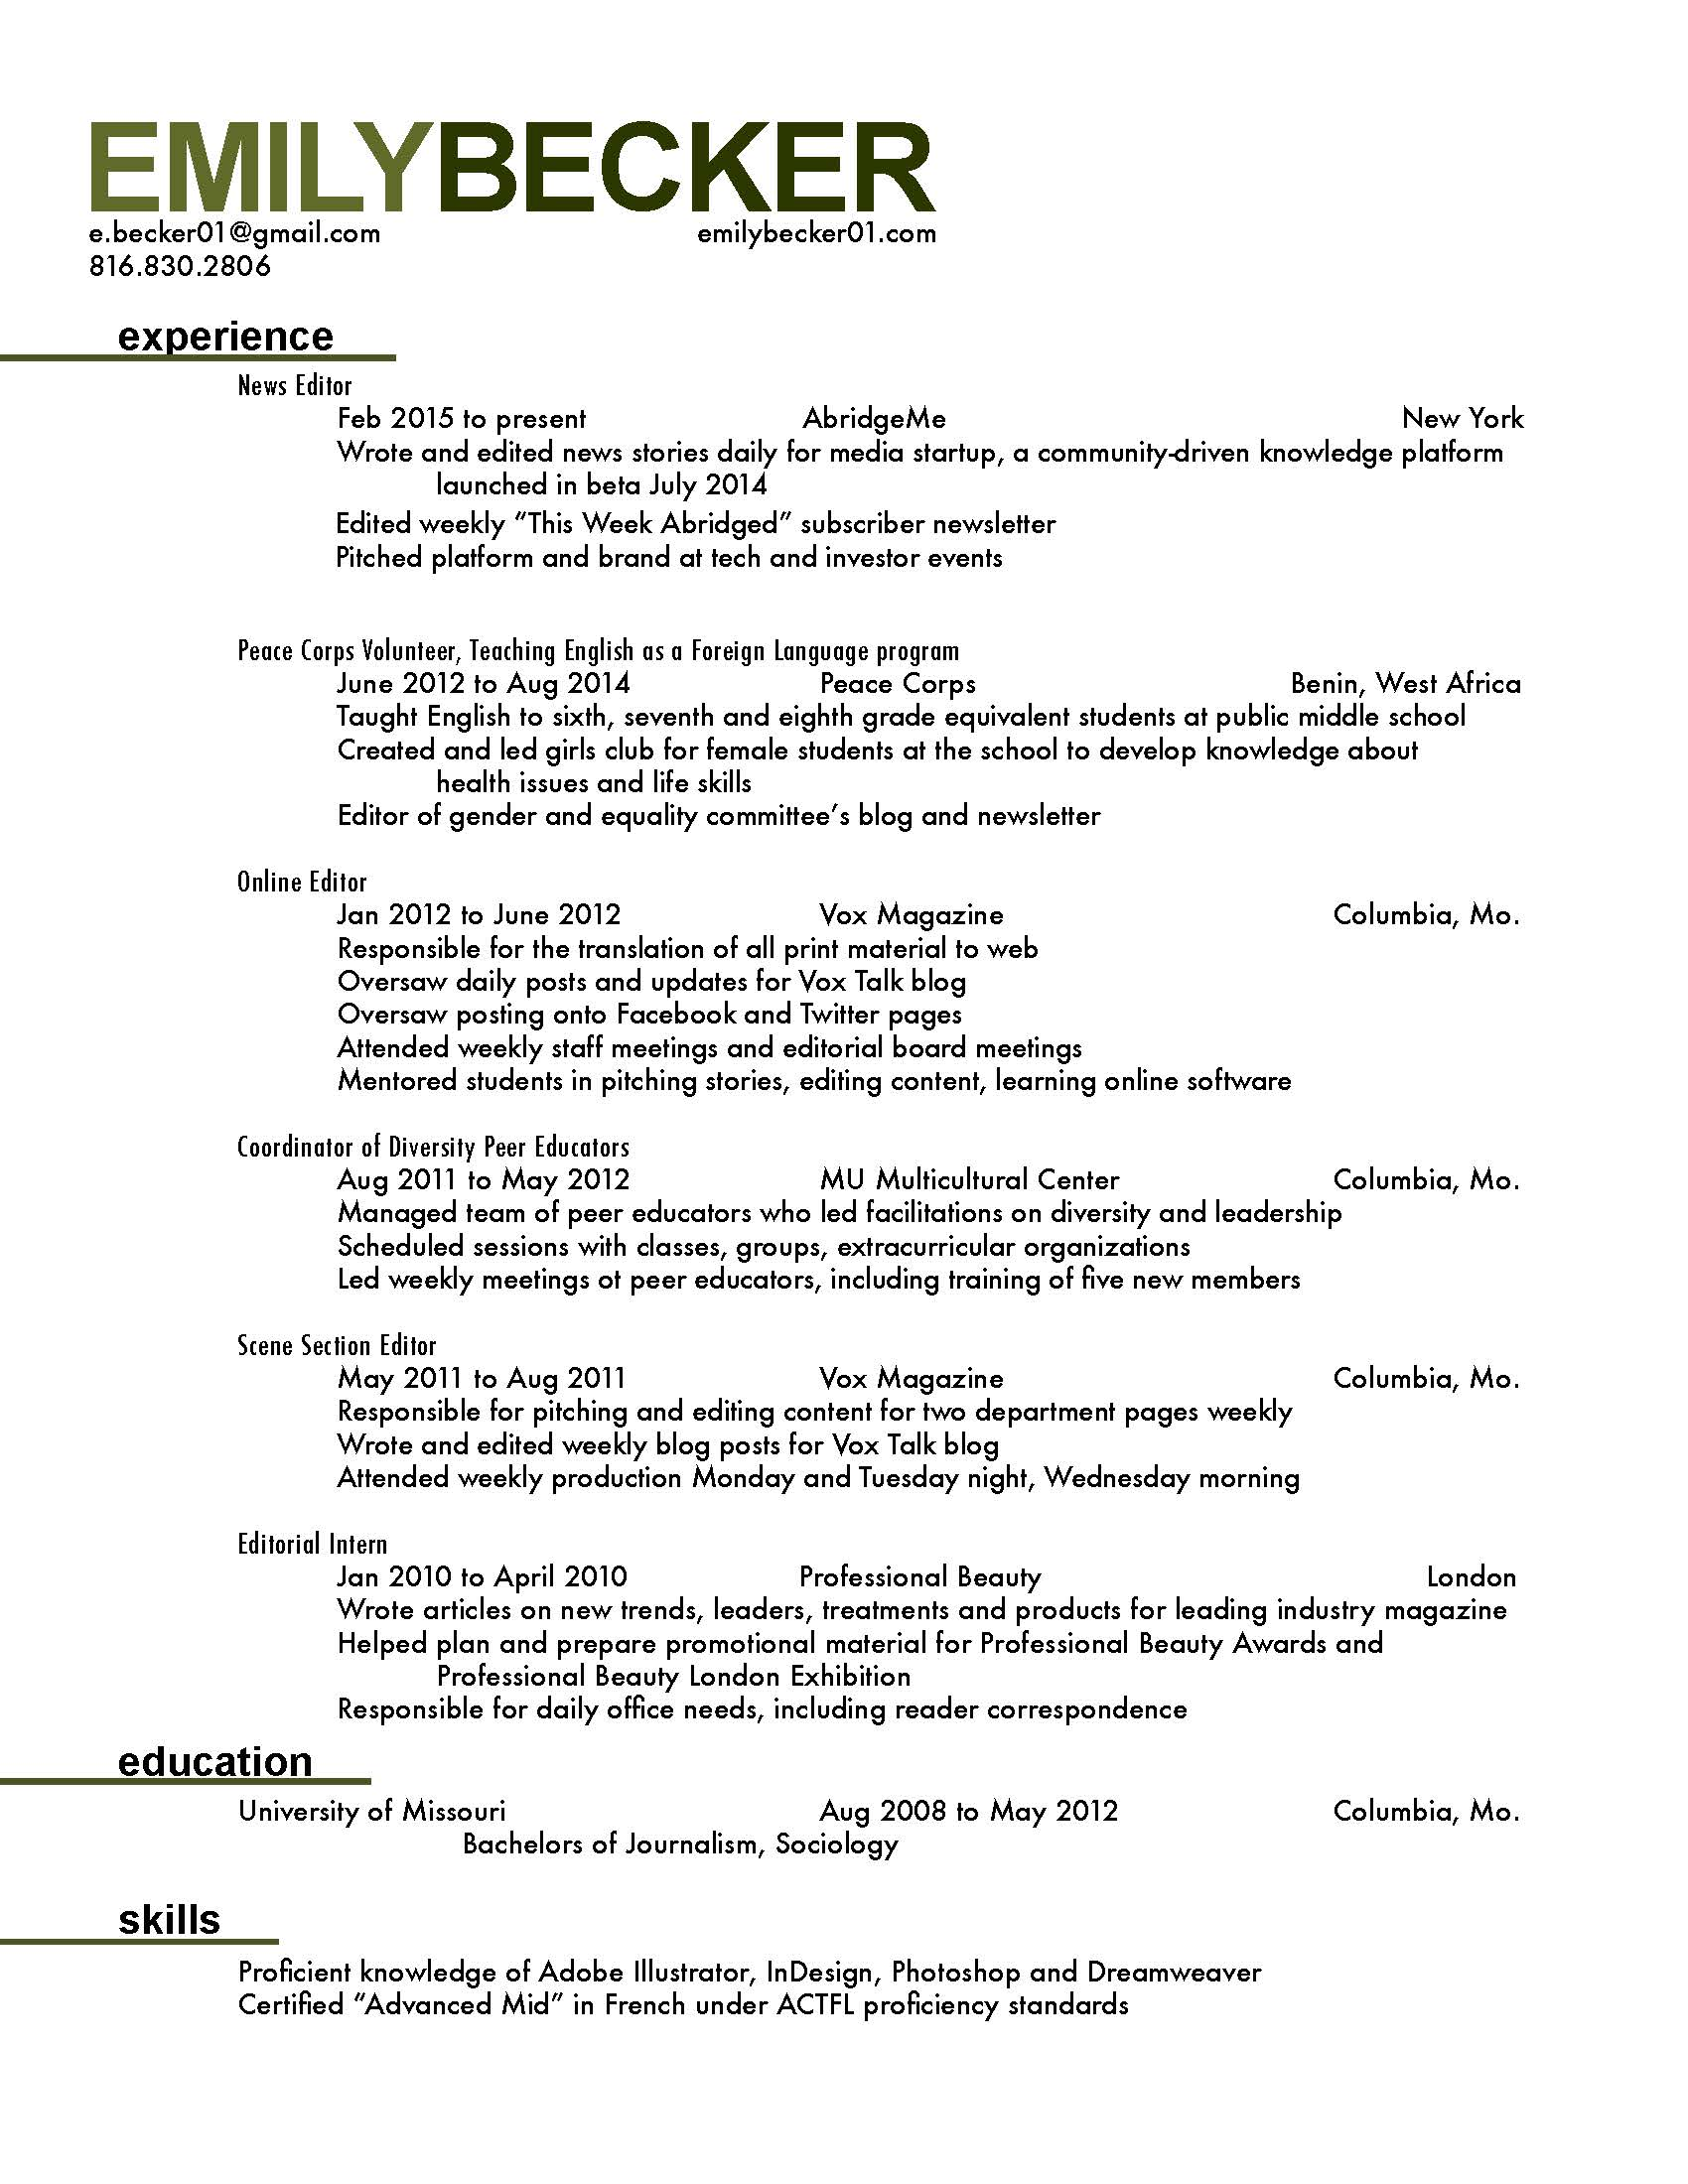 peace corps resume sample - Peace Corps Resume